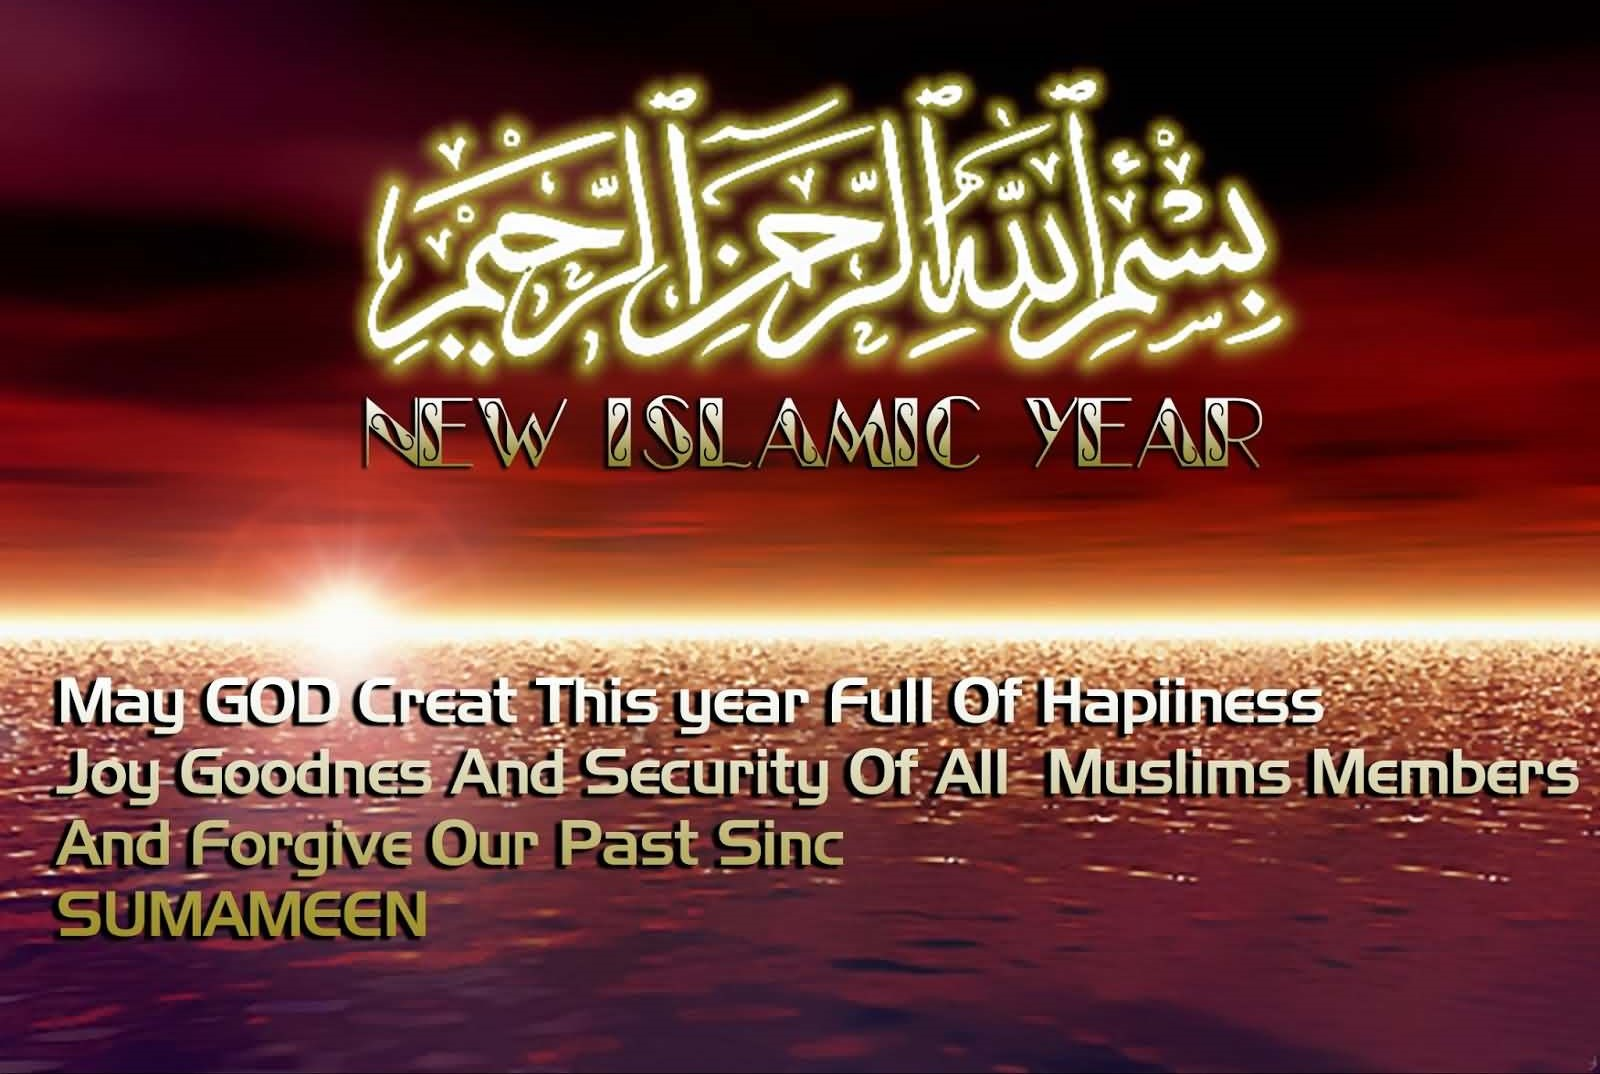 islamic new year greeting picture